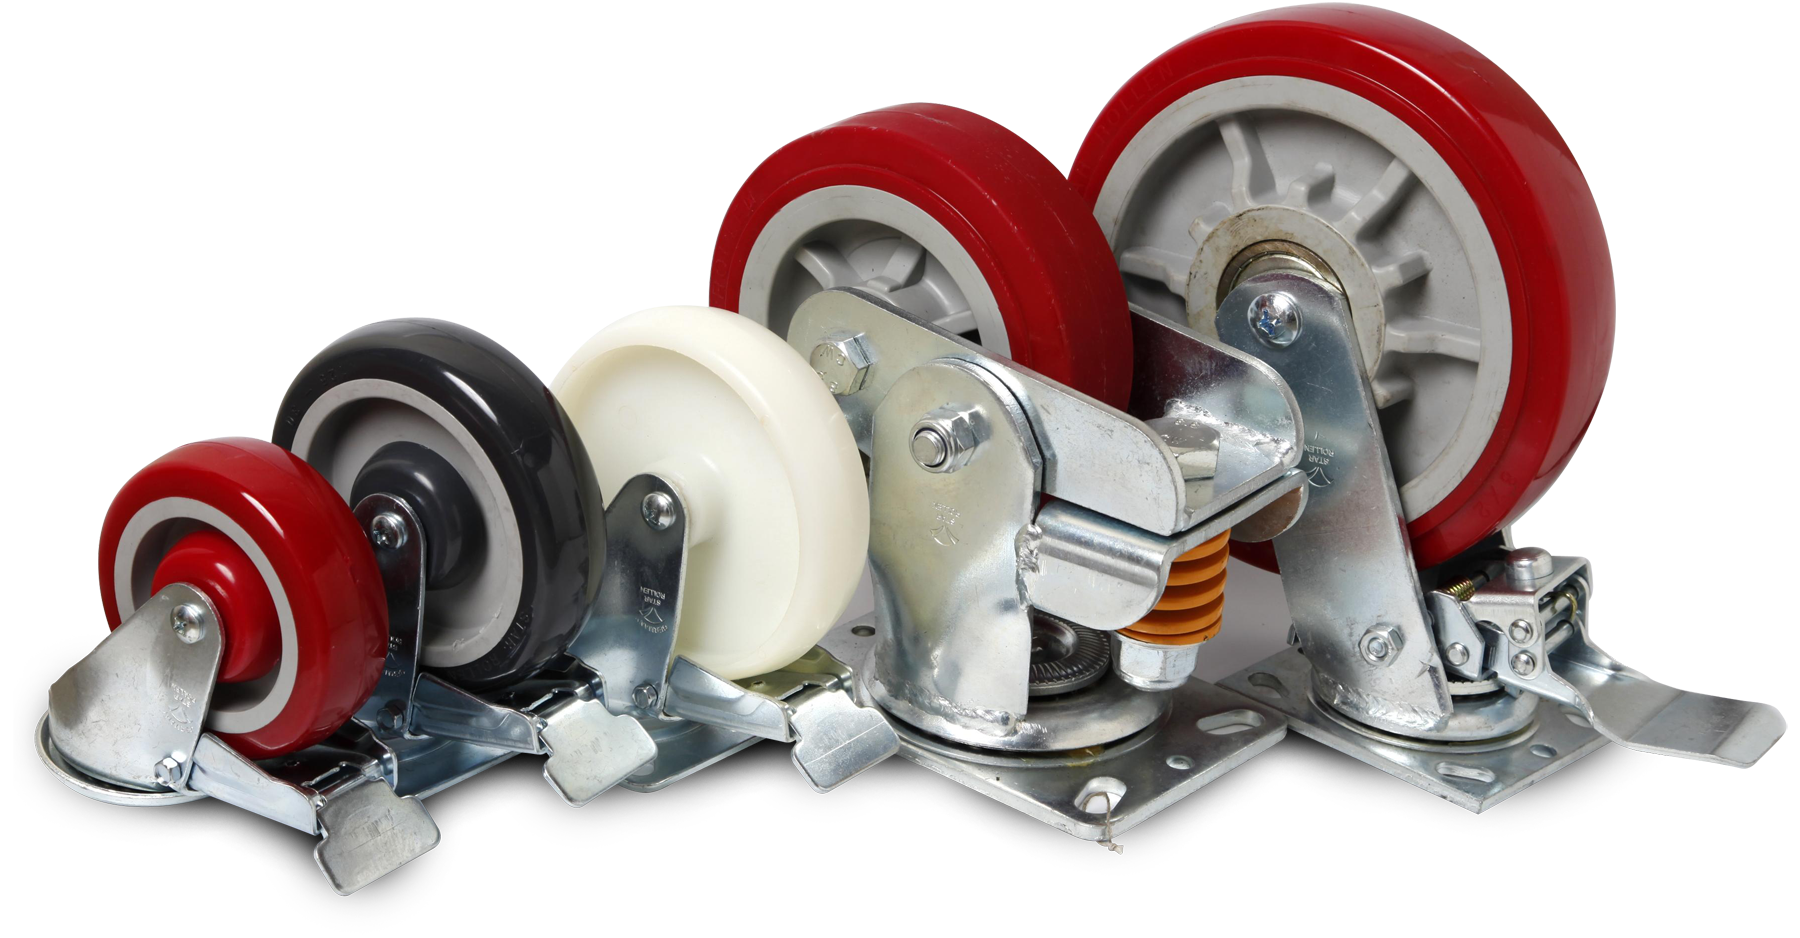 5328f3d88e3697dd4400028f_About-Us-Wheels-r.png